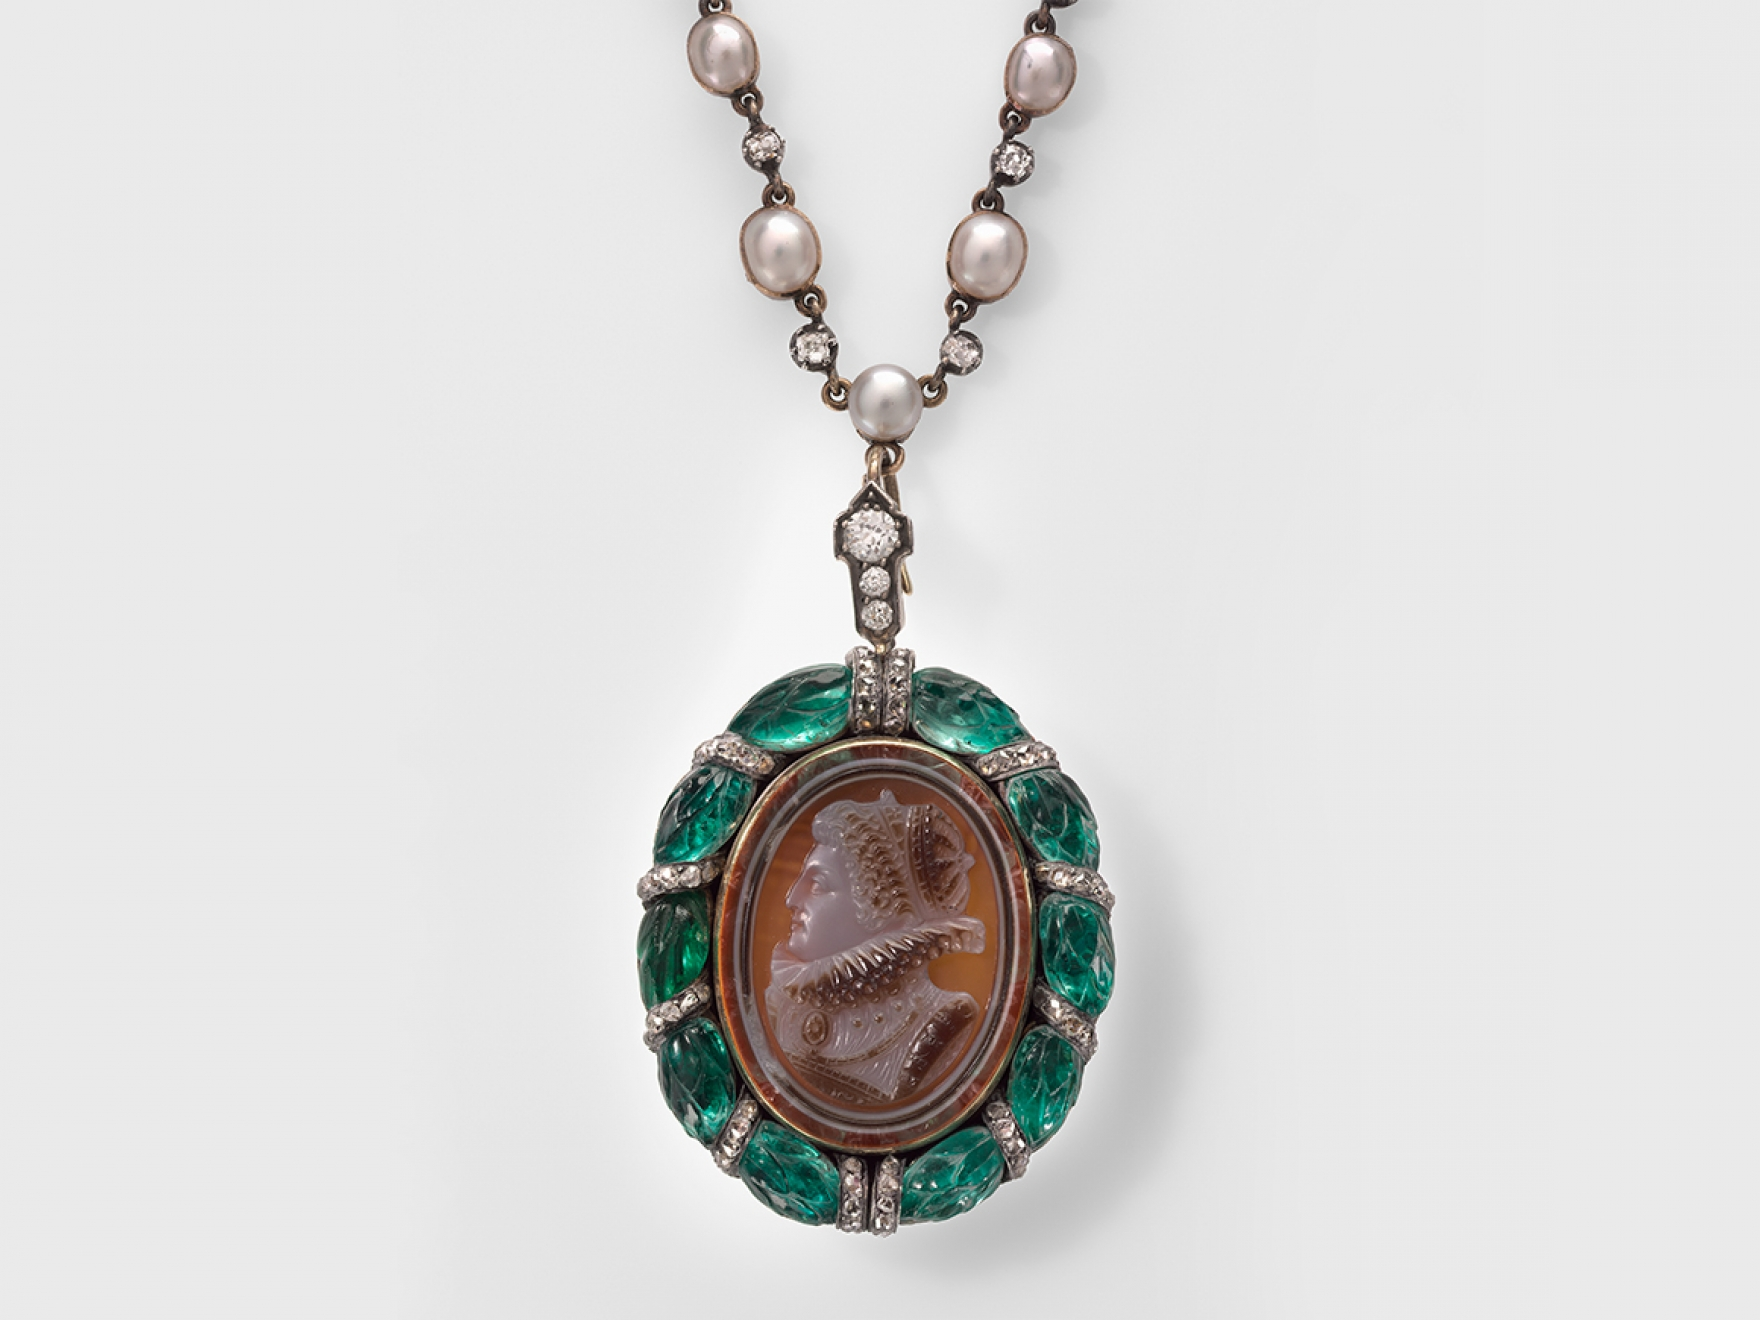 Necklace with a cameo of Elizabeth I, made from gold, silver, diamond, emerald, pearl, agate, and glass